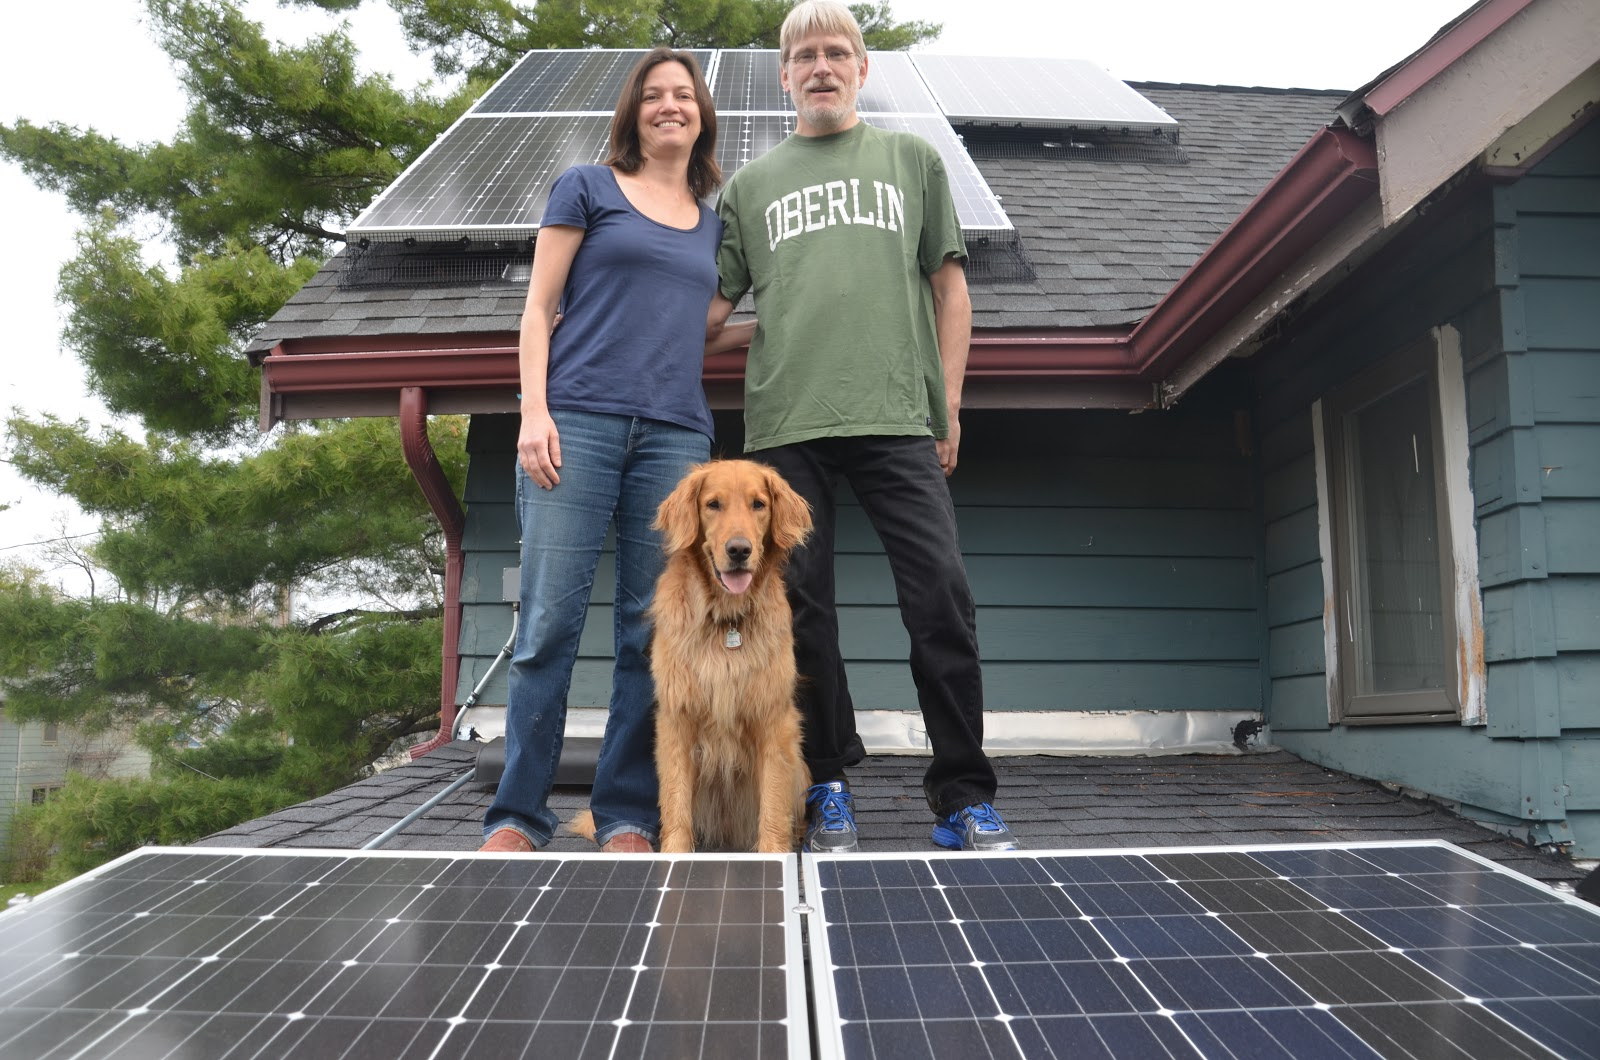 Toland and Passos standing on roof with solar panels and golden retriever